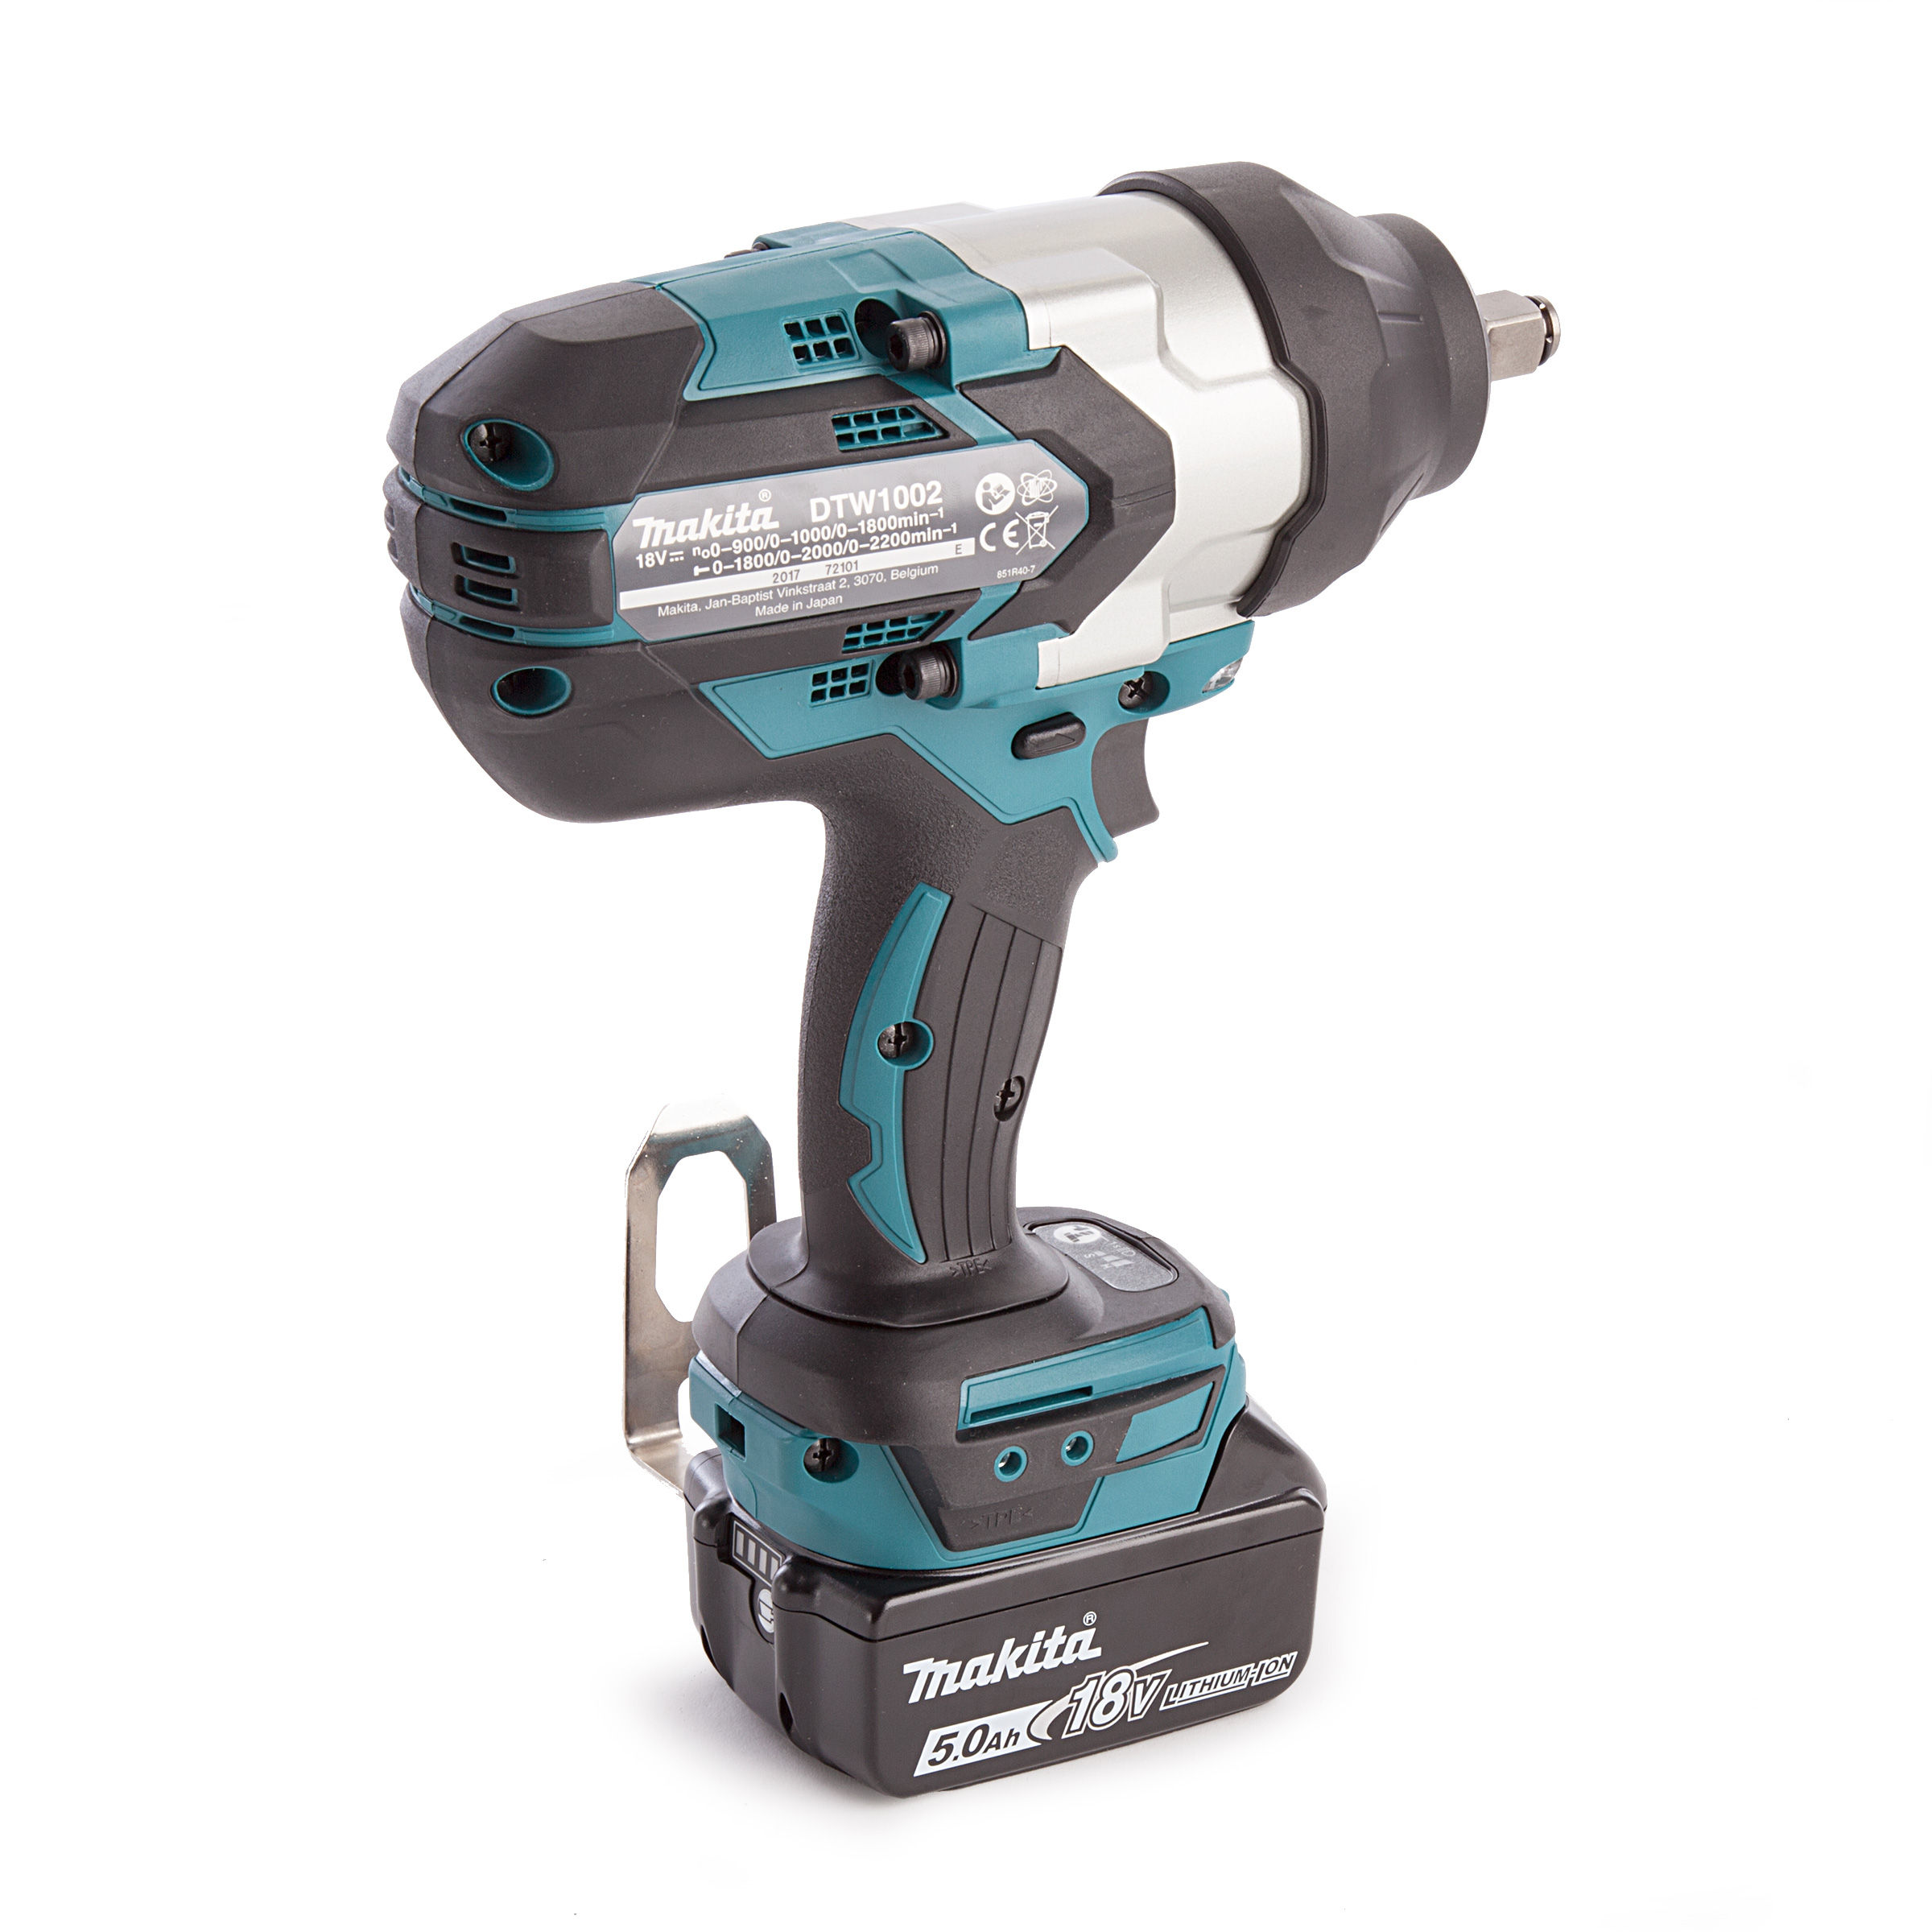 Makita Dtw1002rtj Impact Wrench 18v Brushless Lxt Li Ion 1 2 Inch Square Drive